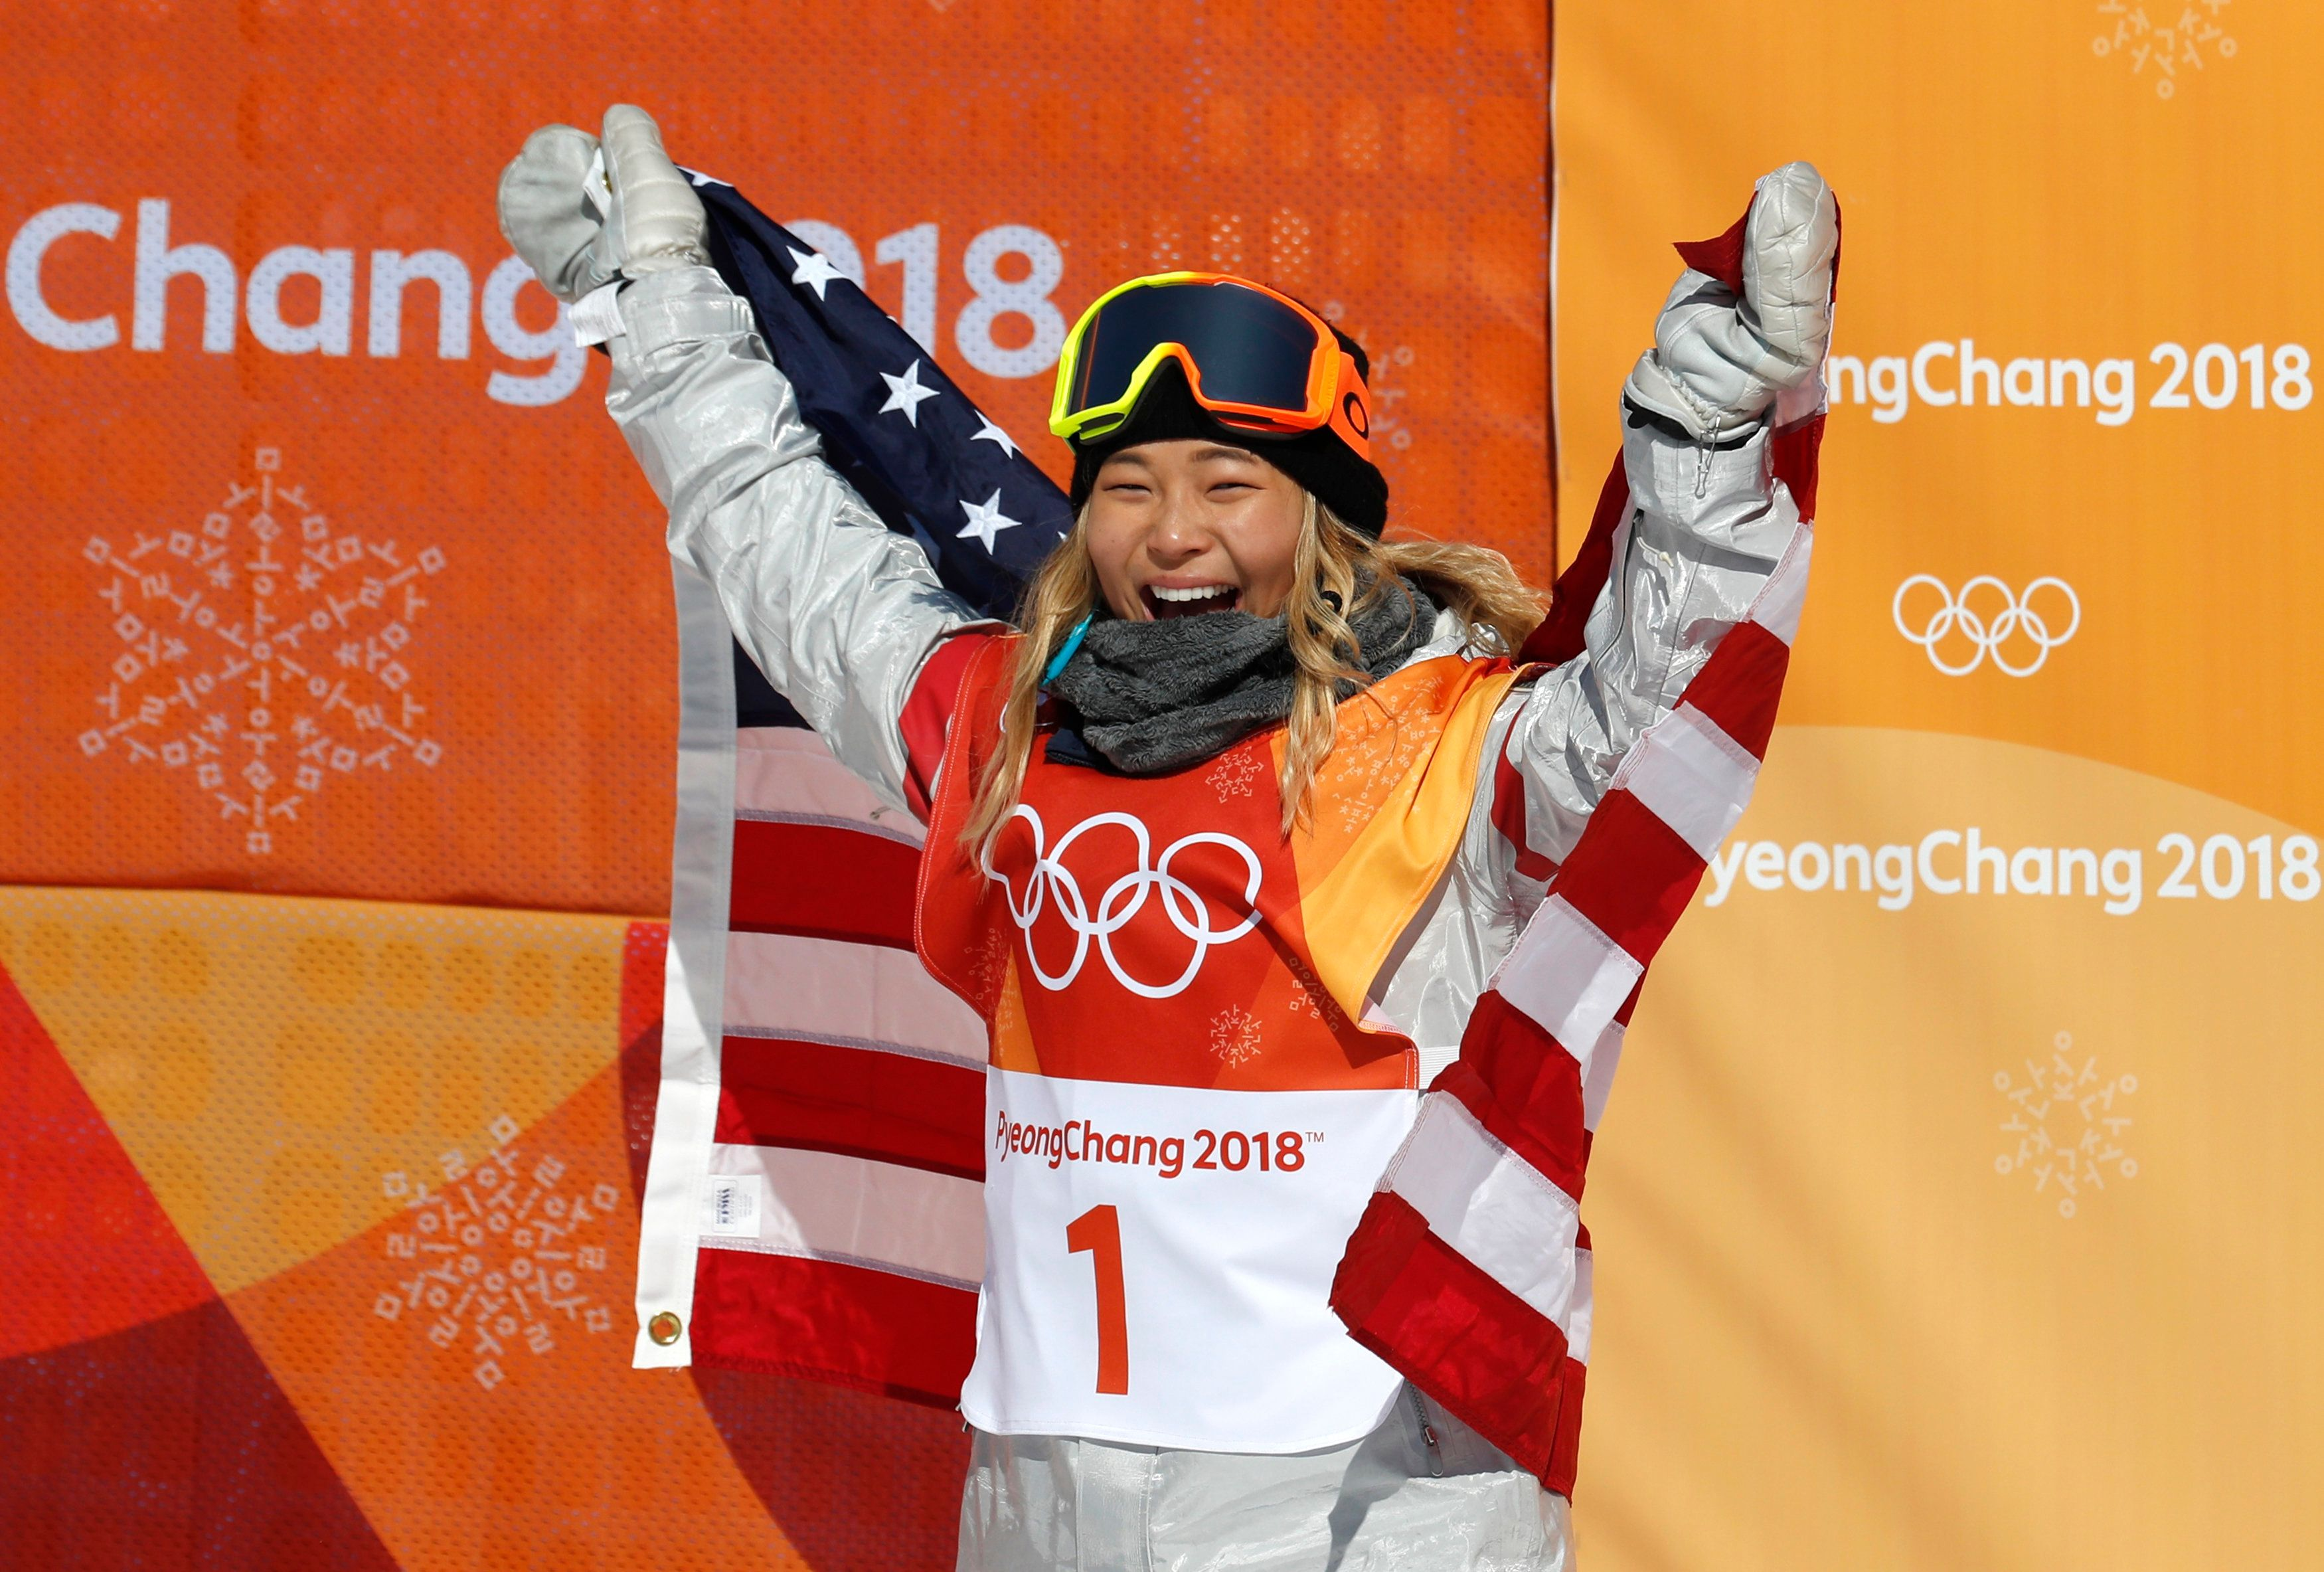 Snowboarding - Pyeongchang 2018 Winter Olympics - Women's Halfpipe Finals - Phoenix Snow Park - Pyeongchang, South Korea - February 13, 2018 - Chloe Kim of the U.S. celebrates her win. REUTERS/Jorge Silva